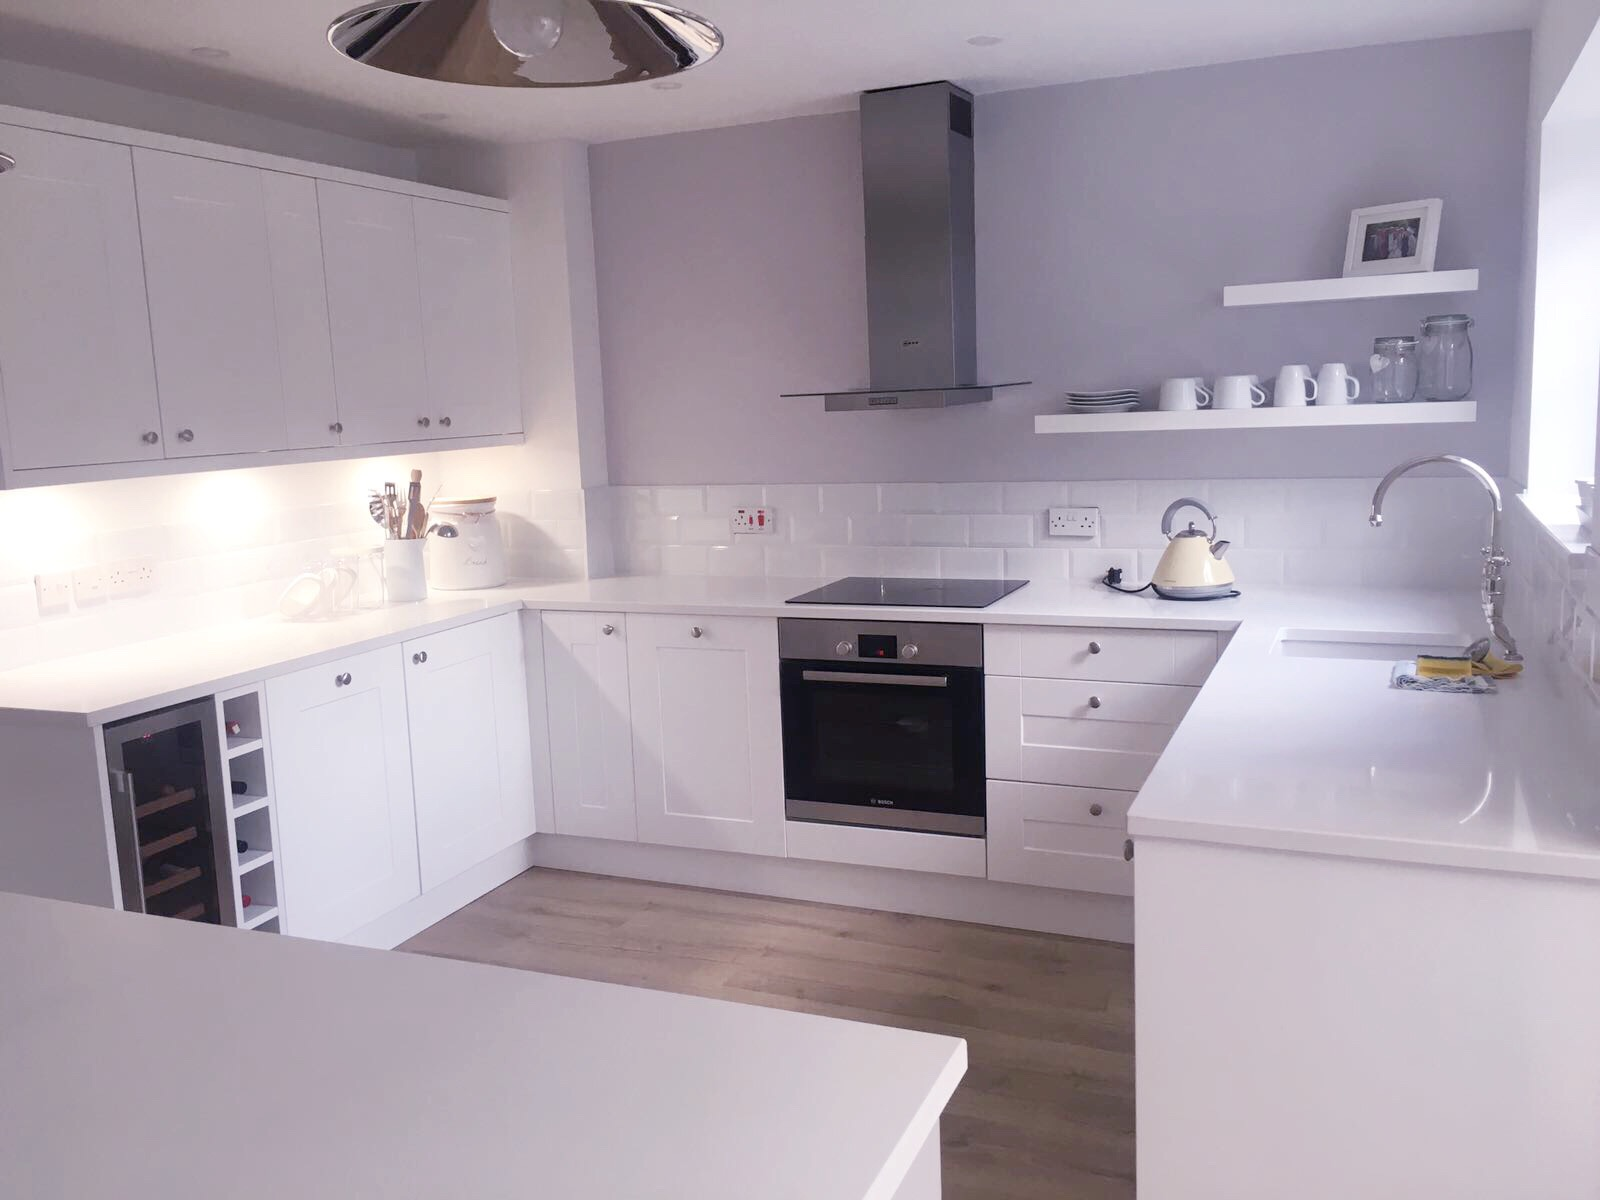 White shaker style kitchen cleaned and clutter free